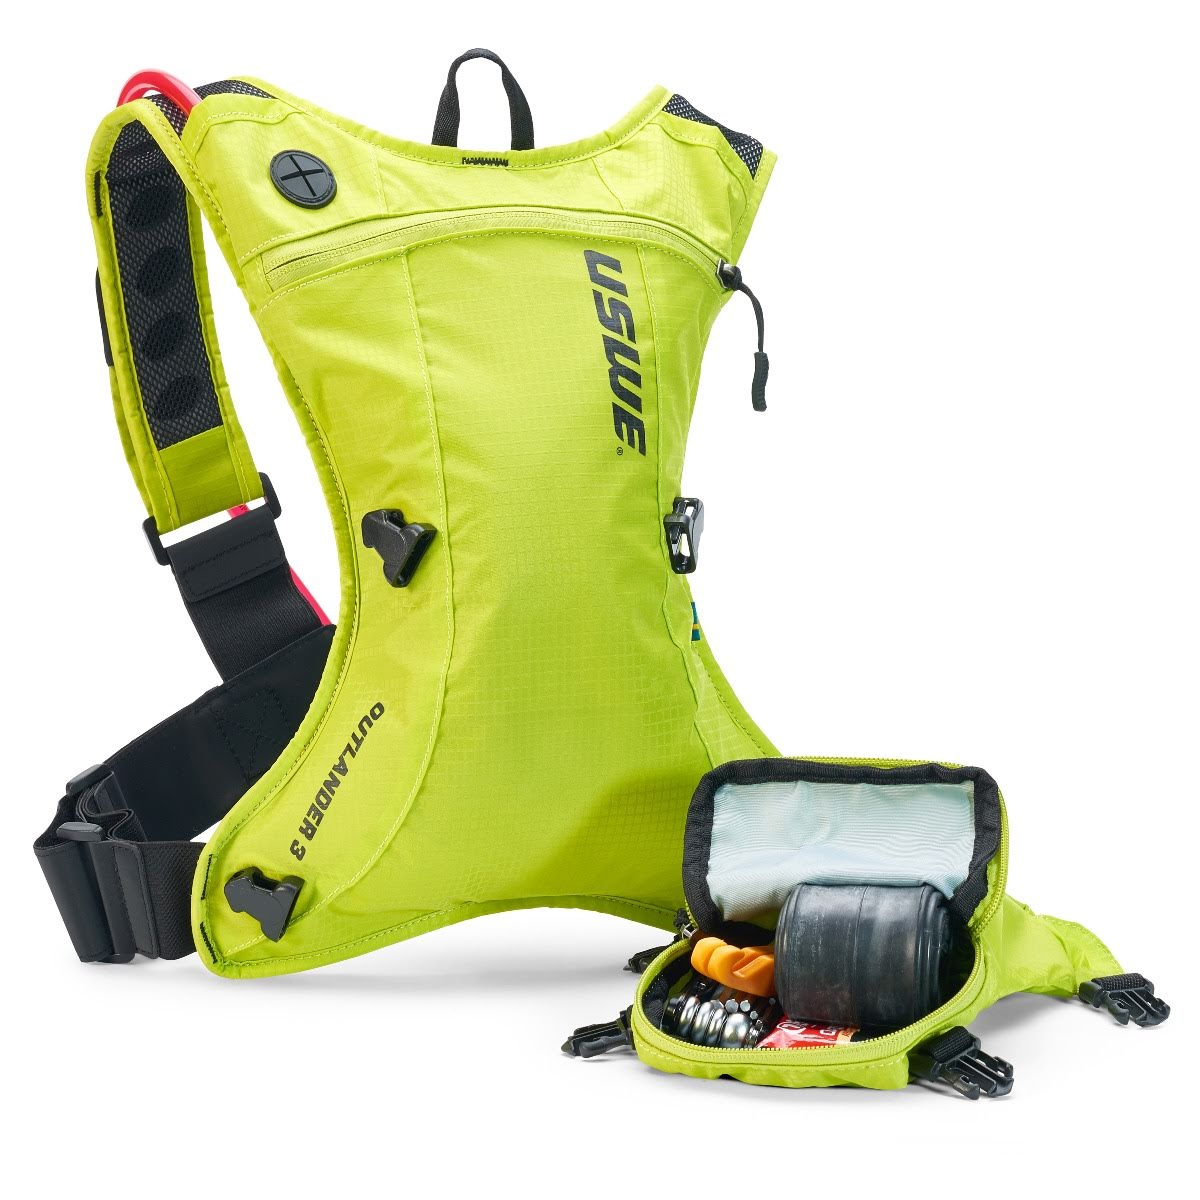 USWE Outlander 3 with 1.5L Hydration Bladder